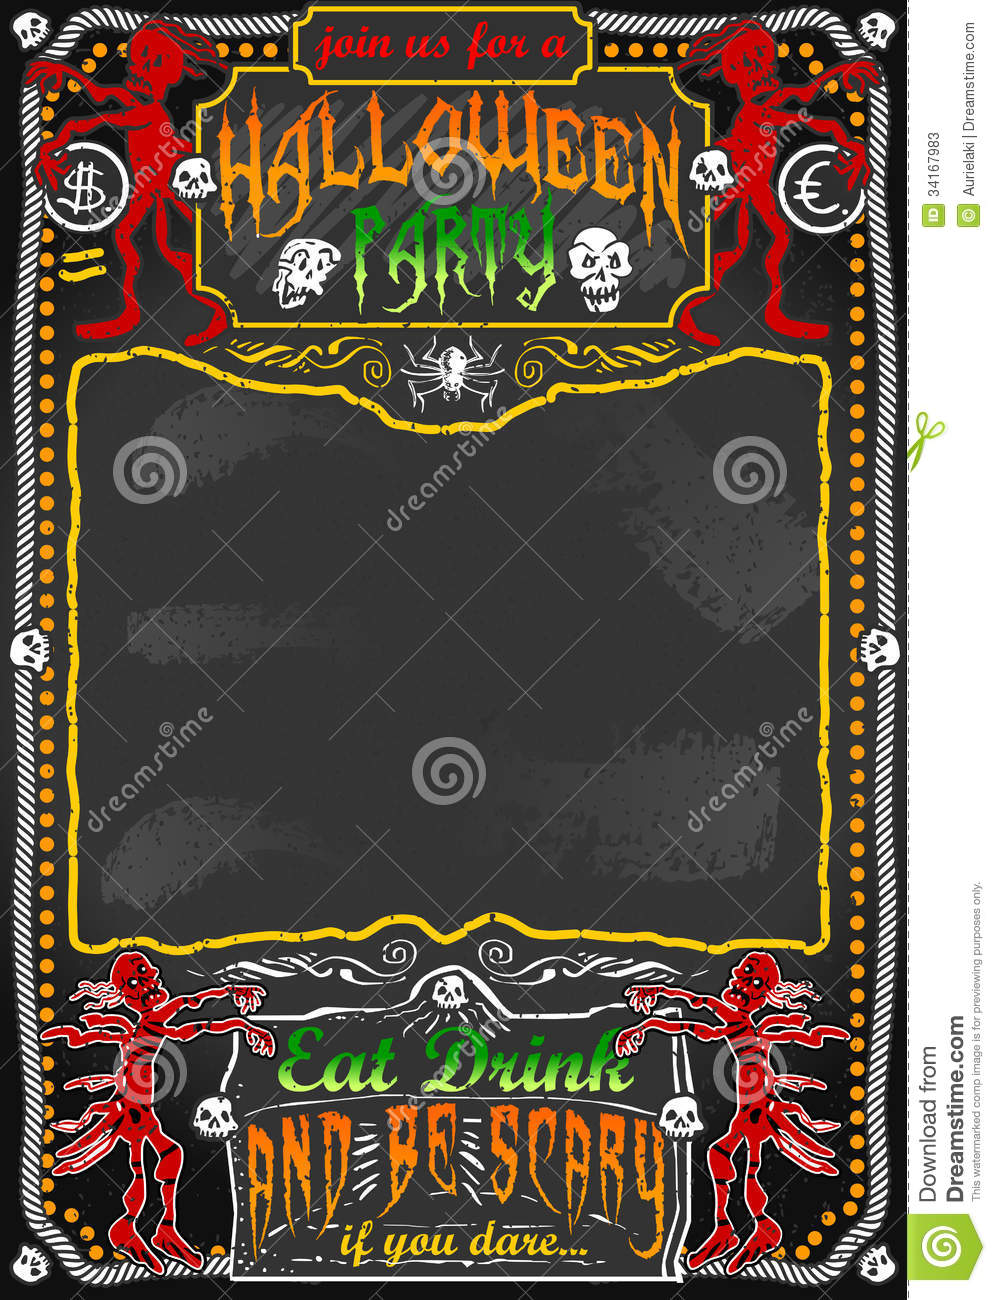 Vintage Blackboard For Halloween Party Stock Photos - Image: 34167983